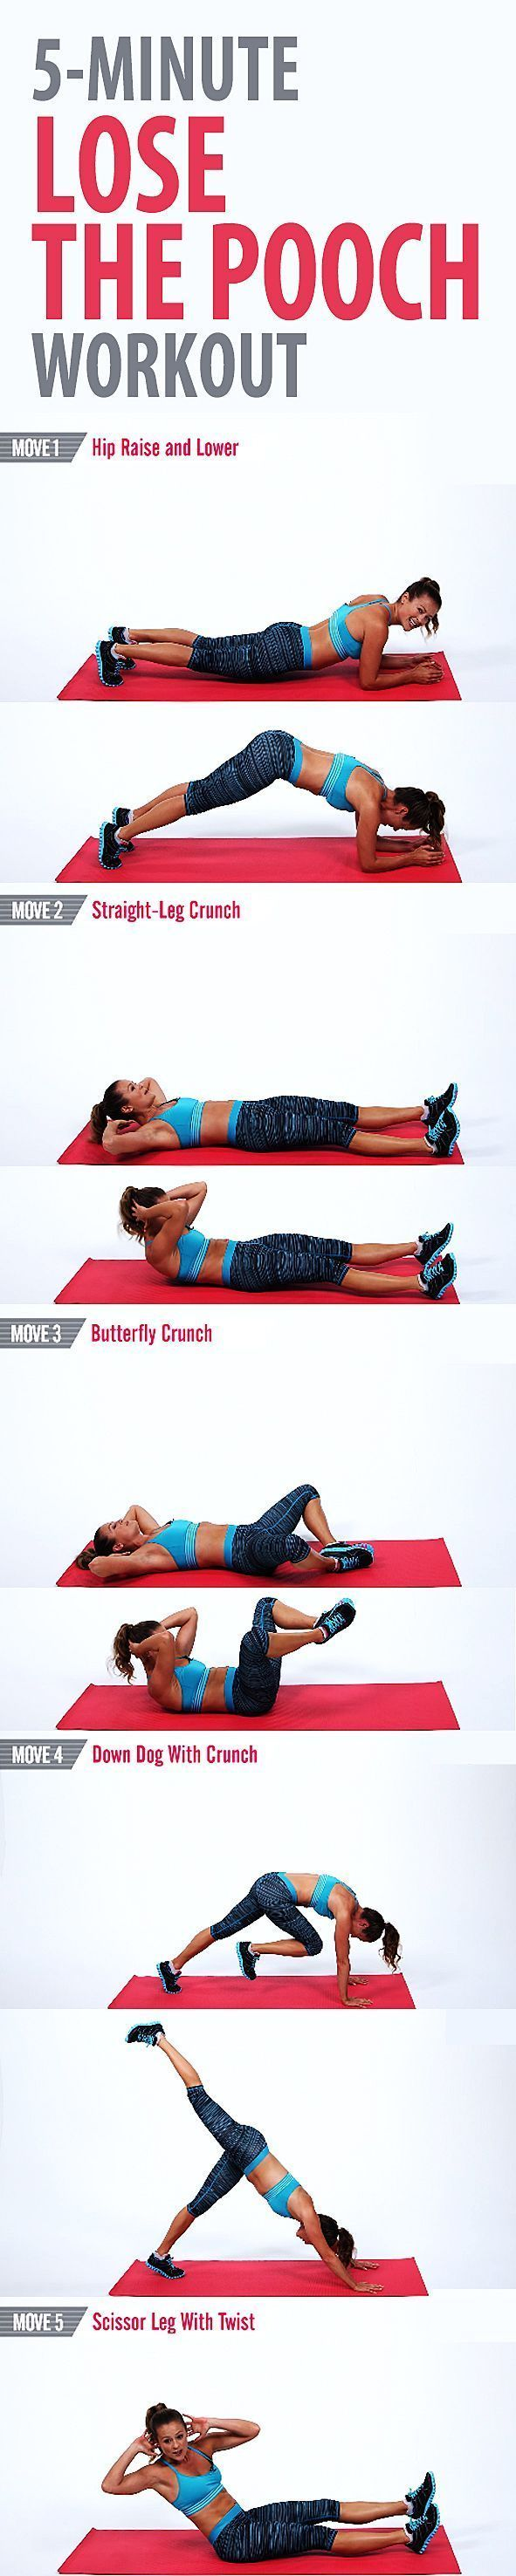 Try this quick and focused workout to tone the lower part of your abs and work off the pooch.